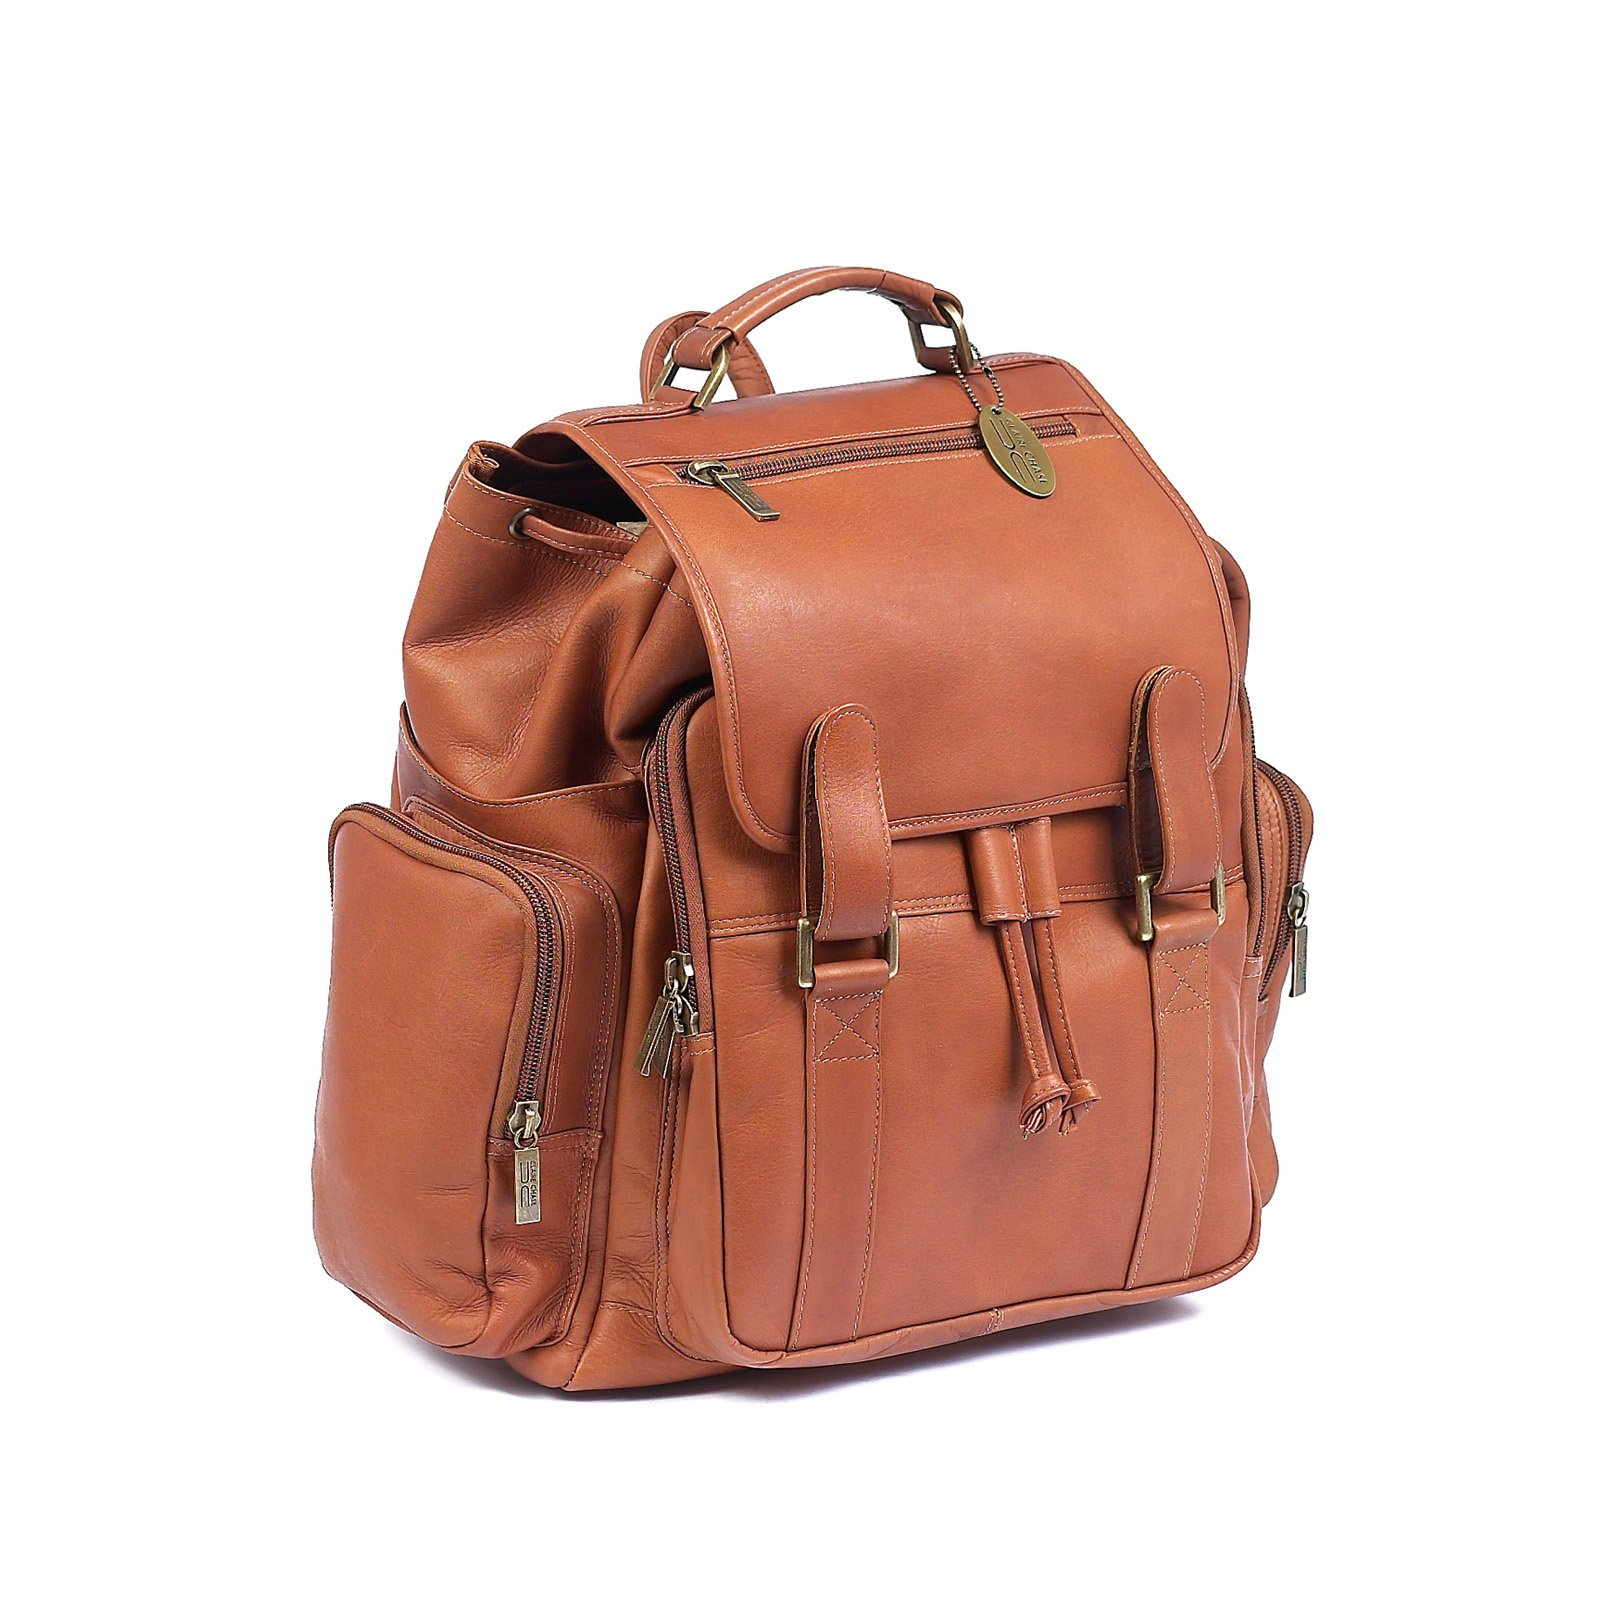 ClaireChase Sierra Backpack - Saddle